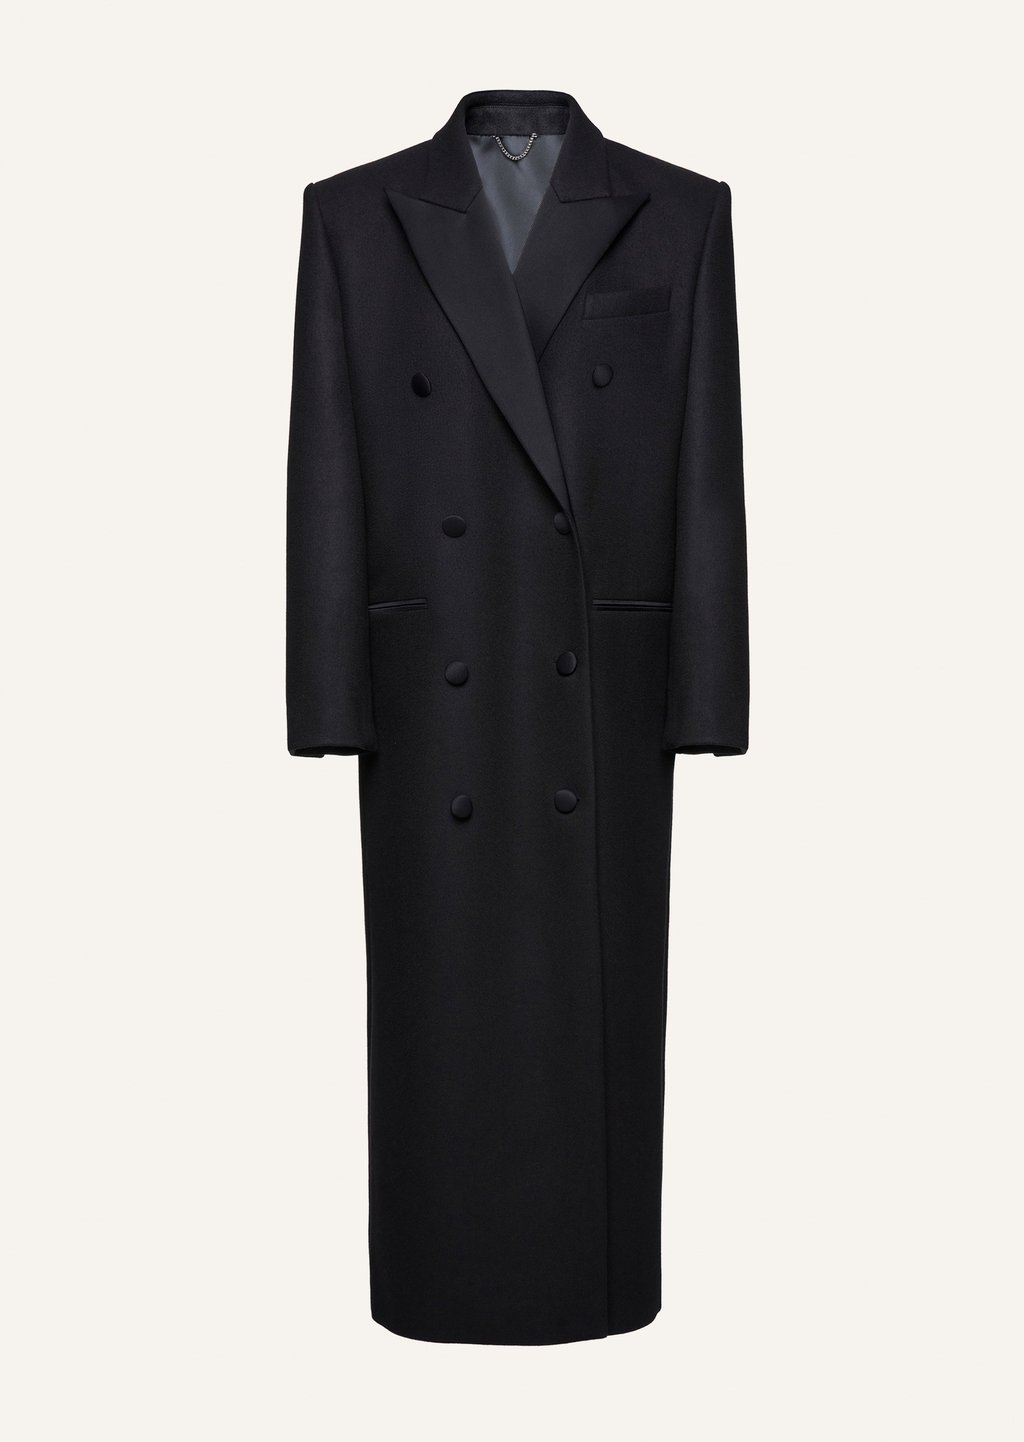 Long classic wool coat in black by Magda Butrym, available on magdabutrym.com for EUR2825 Hailey Baldwin Outerwear Exact Product